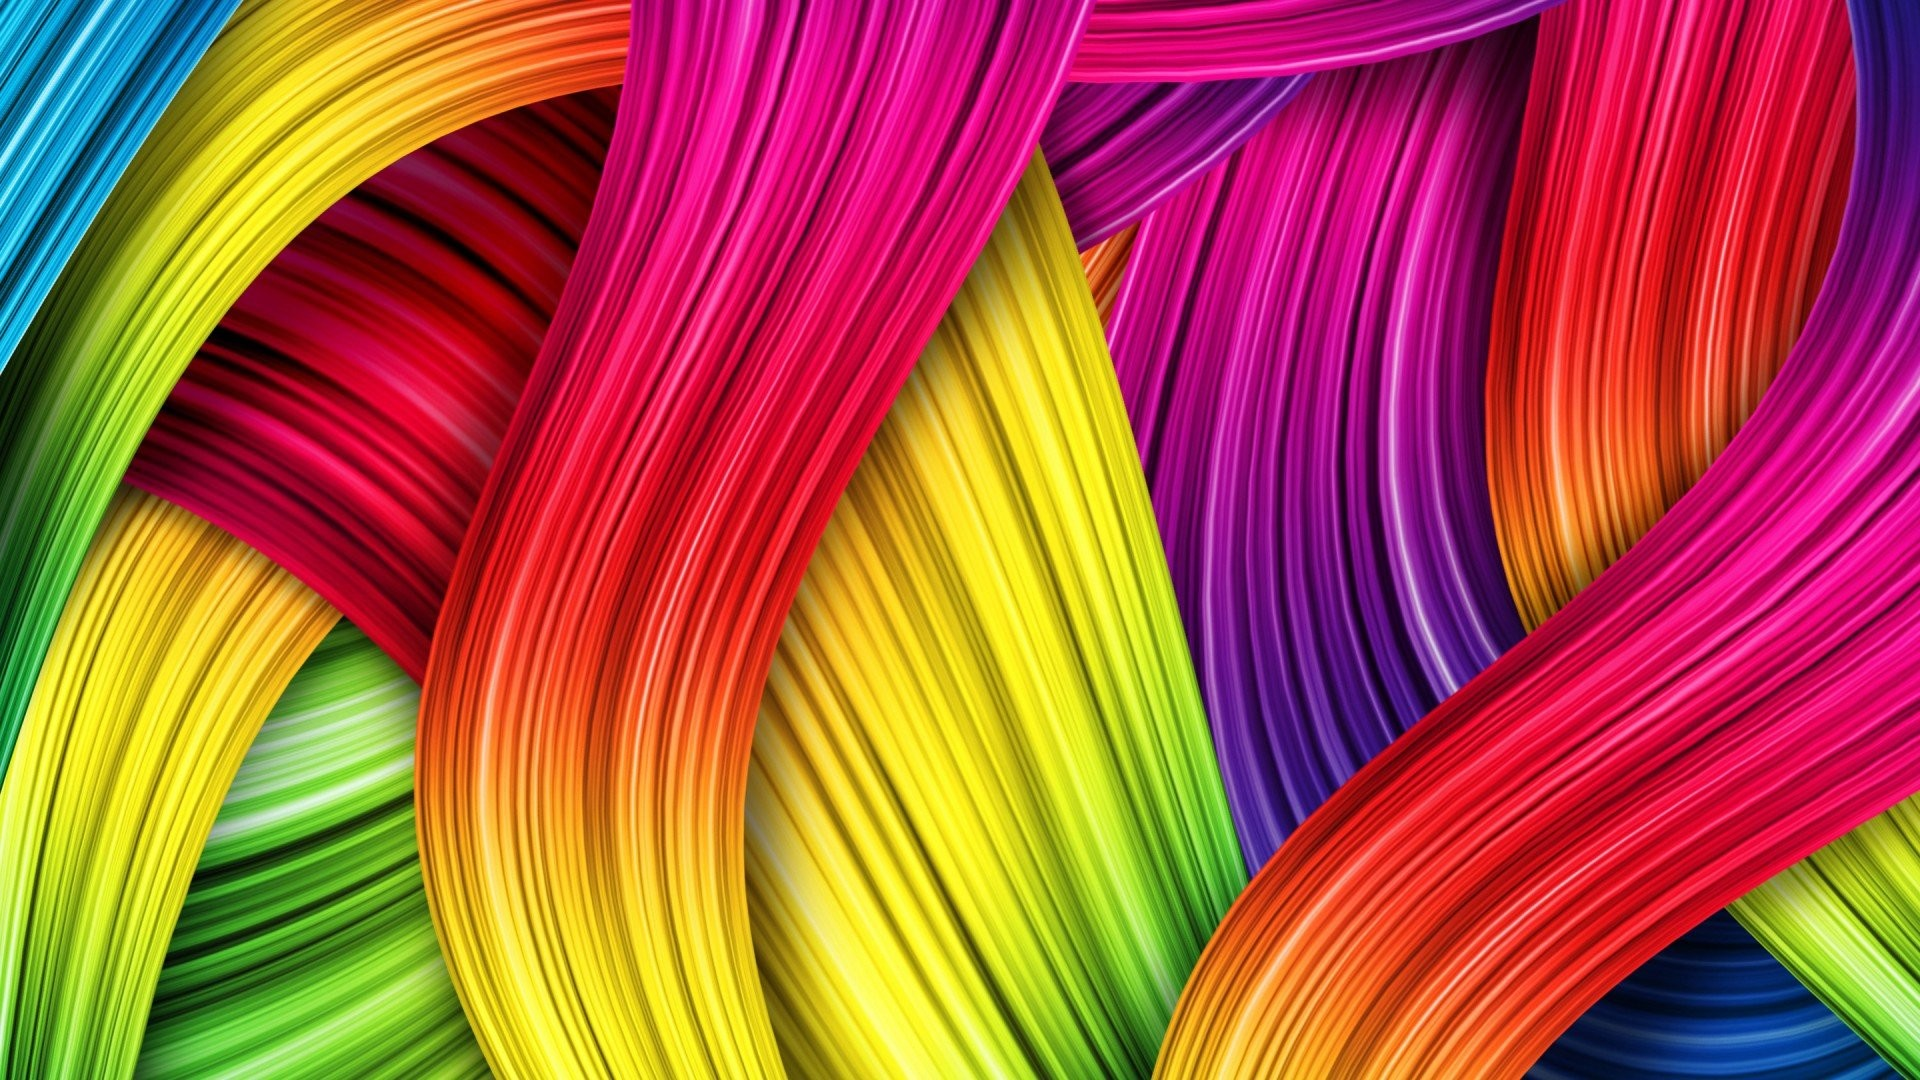 Res: 1920x1080, colorful-pattern-high-quality-for-high-resolution-desktop-